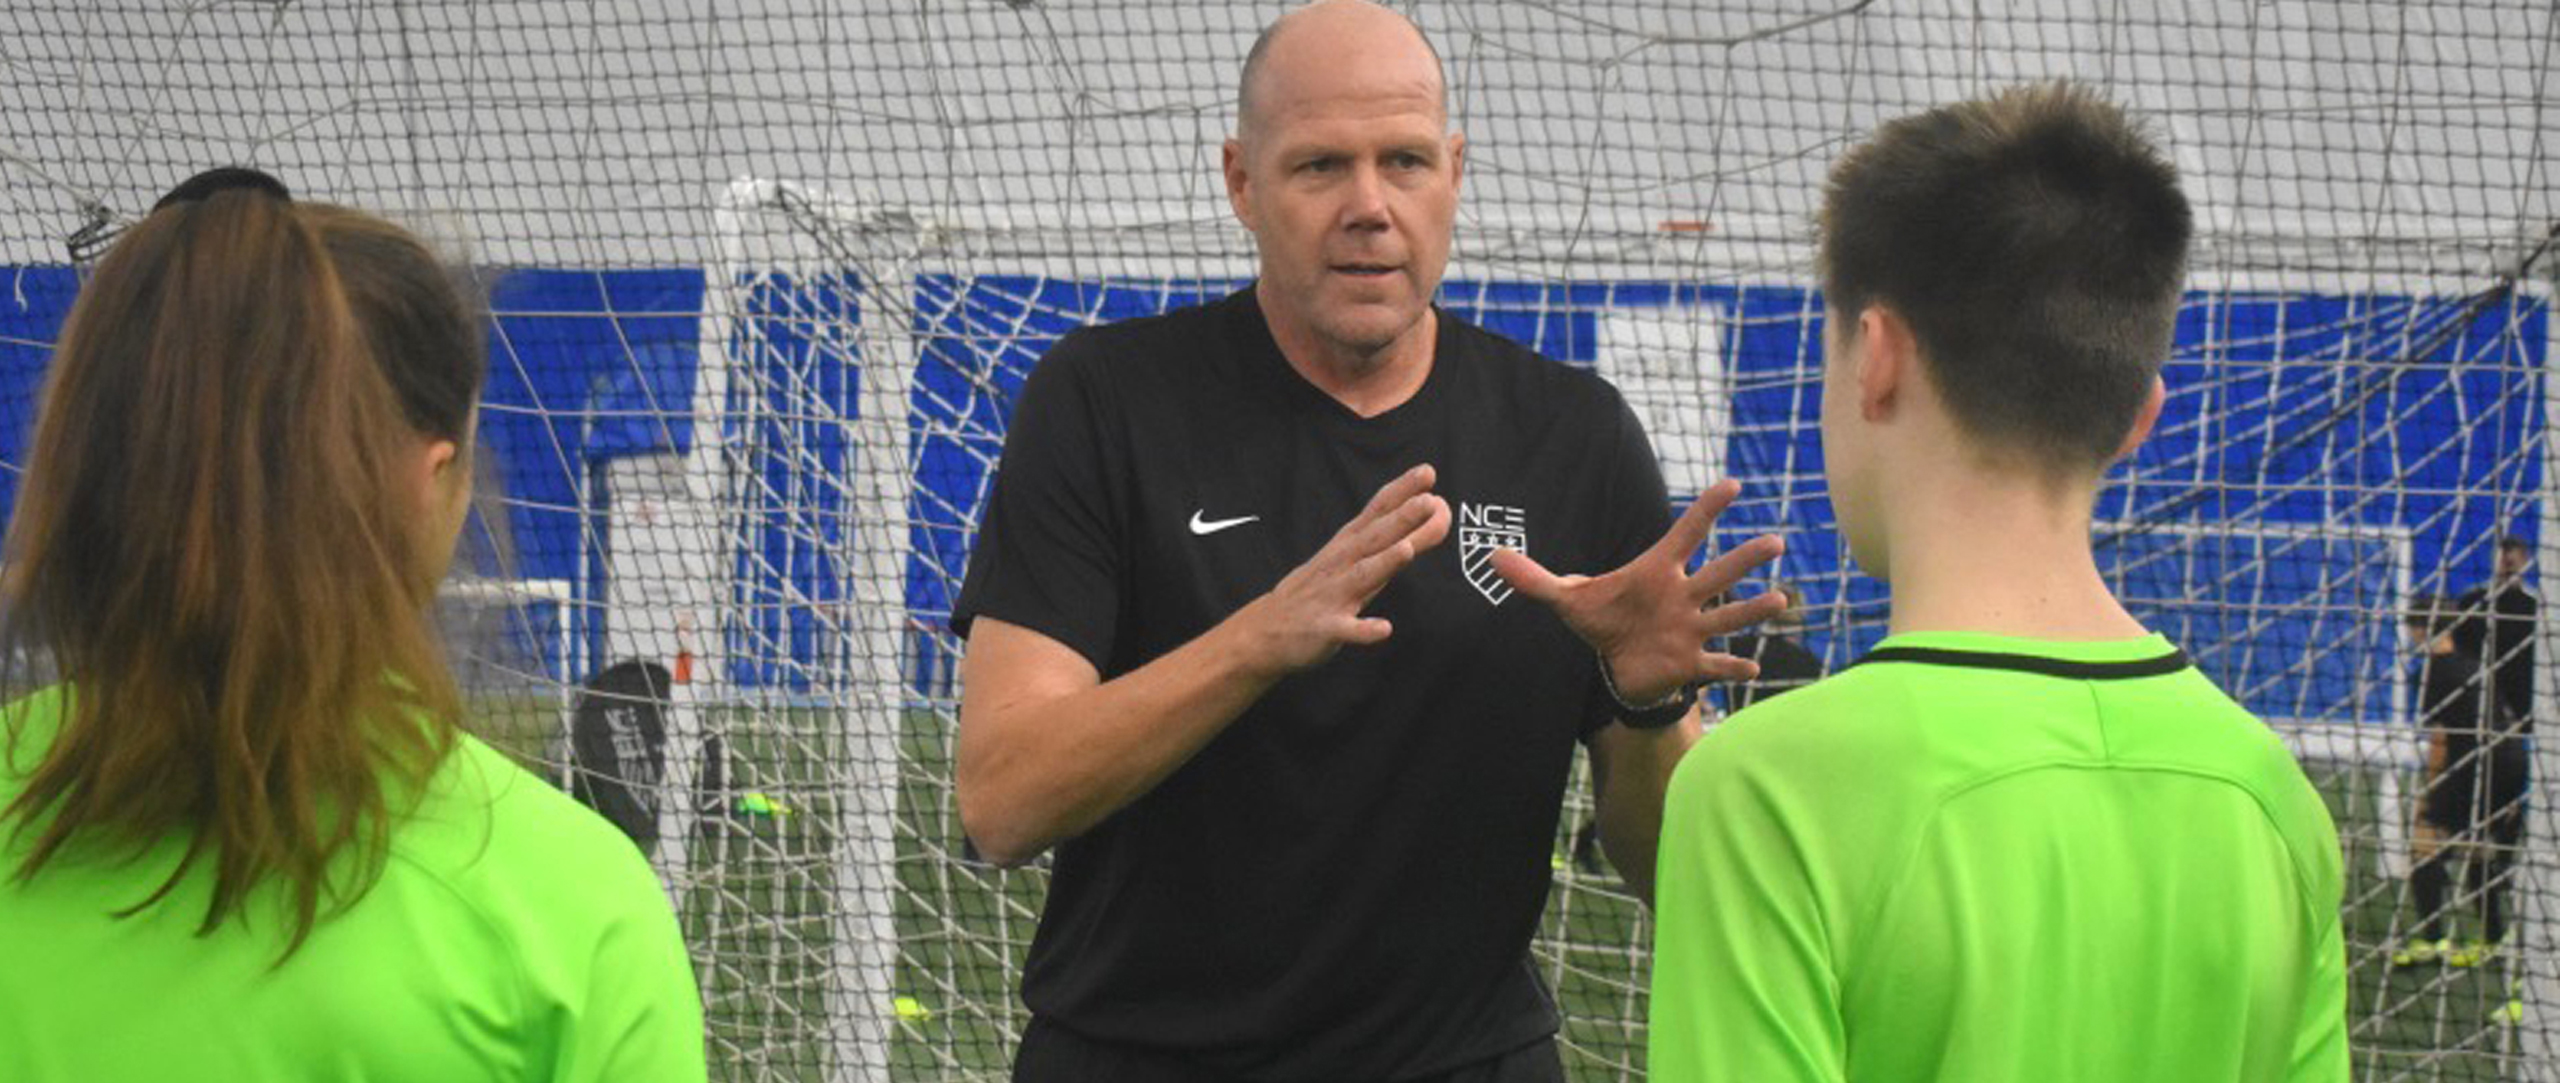 Brad-Friedel-will-host-a-goalkeeping-clinic-with-NCE-Soccer-this-summer